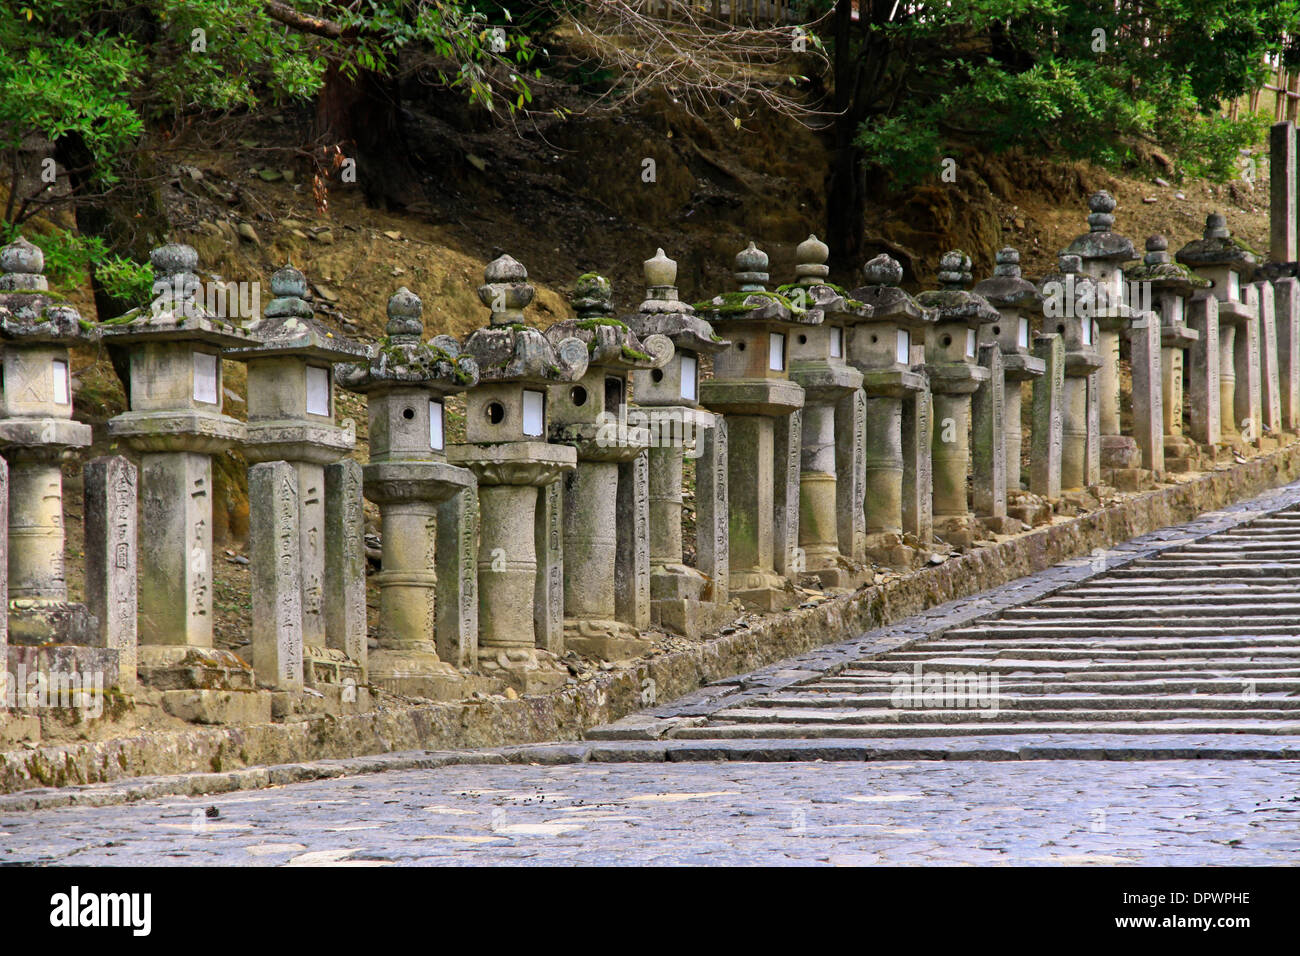 A multitude of stone lanterns along the stairway leading to Nigatsudo Hall, in the temple grounds of Todaiji, Nara, Japan. - Stock Image